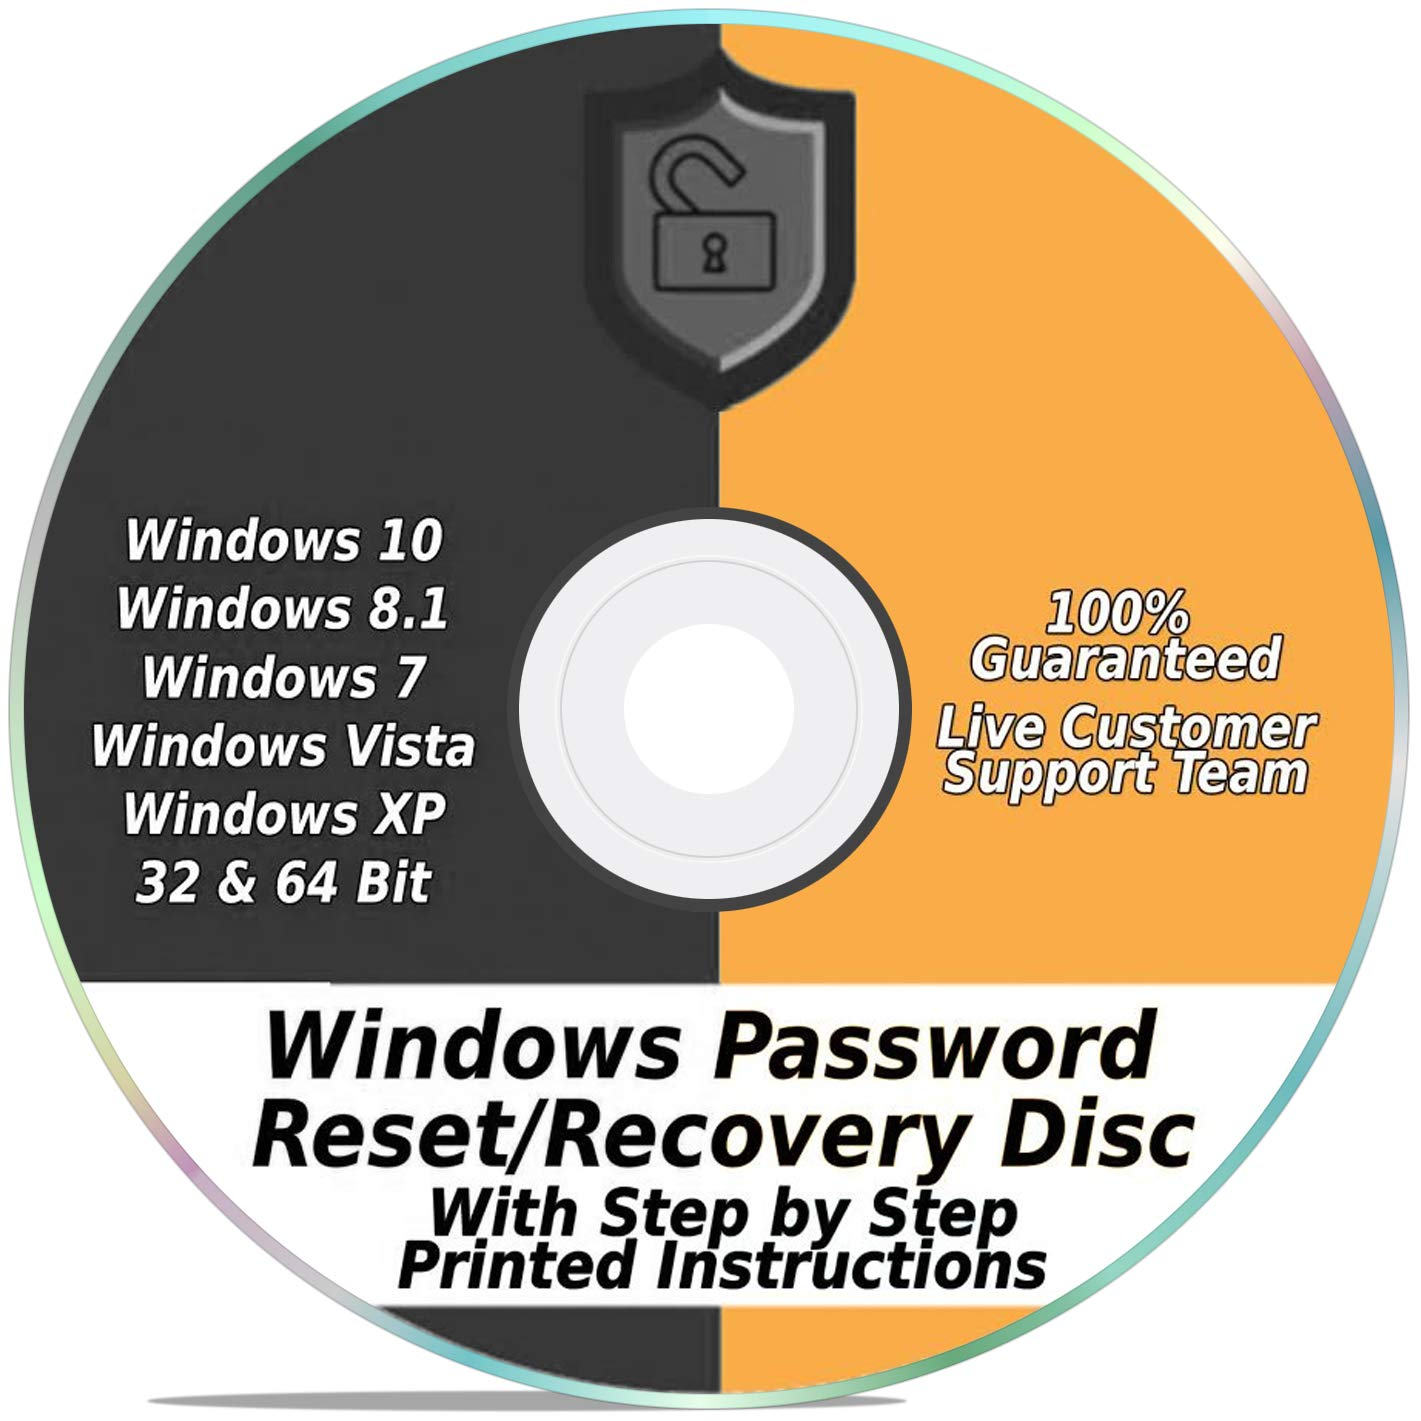 Windows Password Reset Recovery Disk Windows 10, 8.1, 7, Vista, XP #1 Best Unlocker Remove Software CD DVD (For All PC Computers) by Easy Windows Recovery